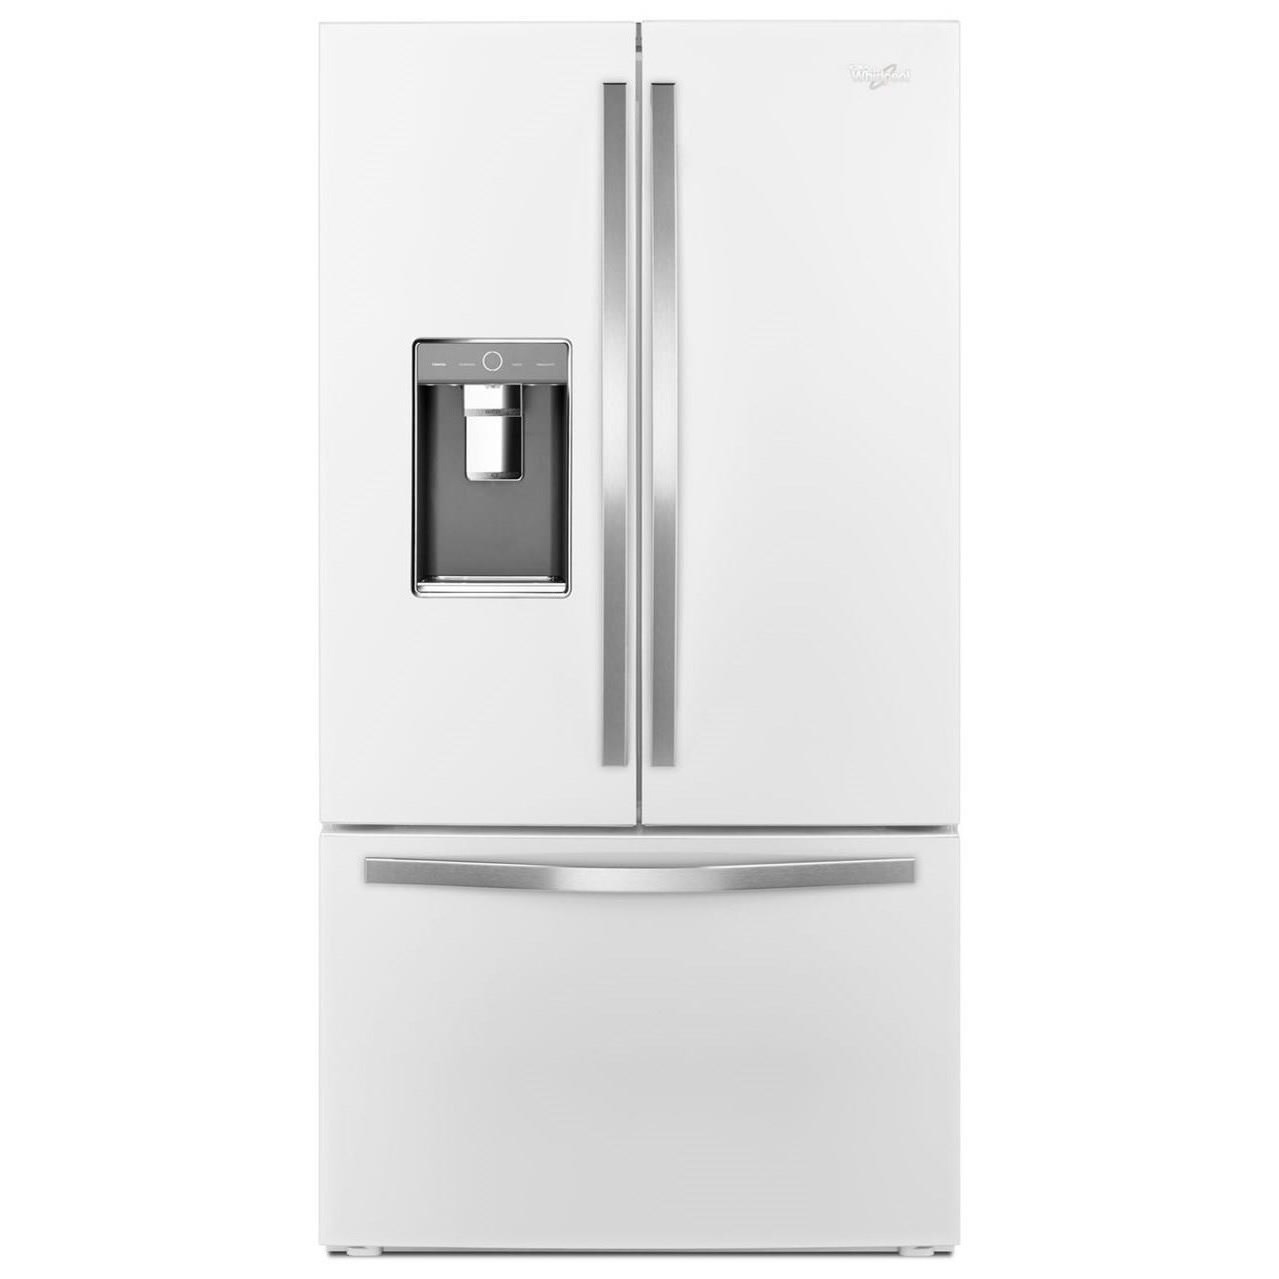 Bon Whirlpool French Door Refrigerators36 Inch Wide French Door Refrigerator ...